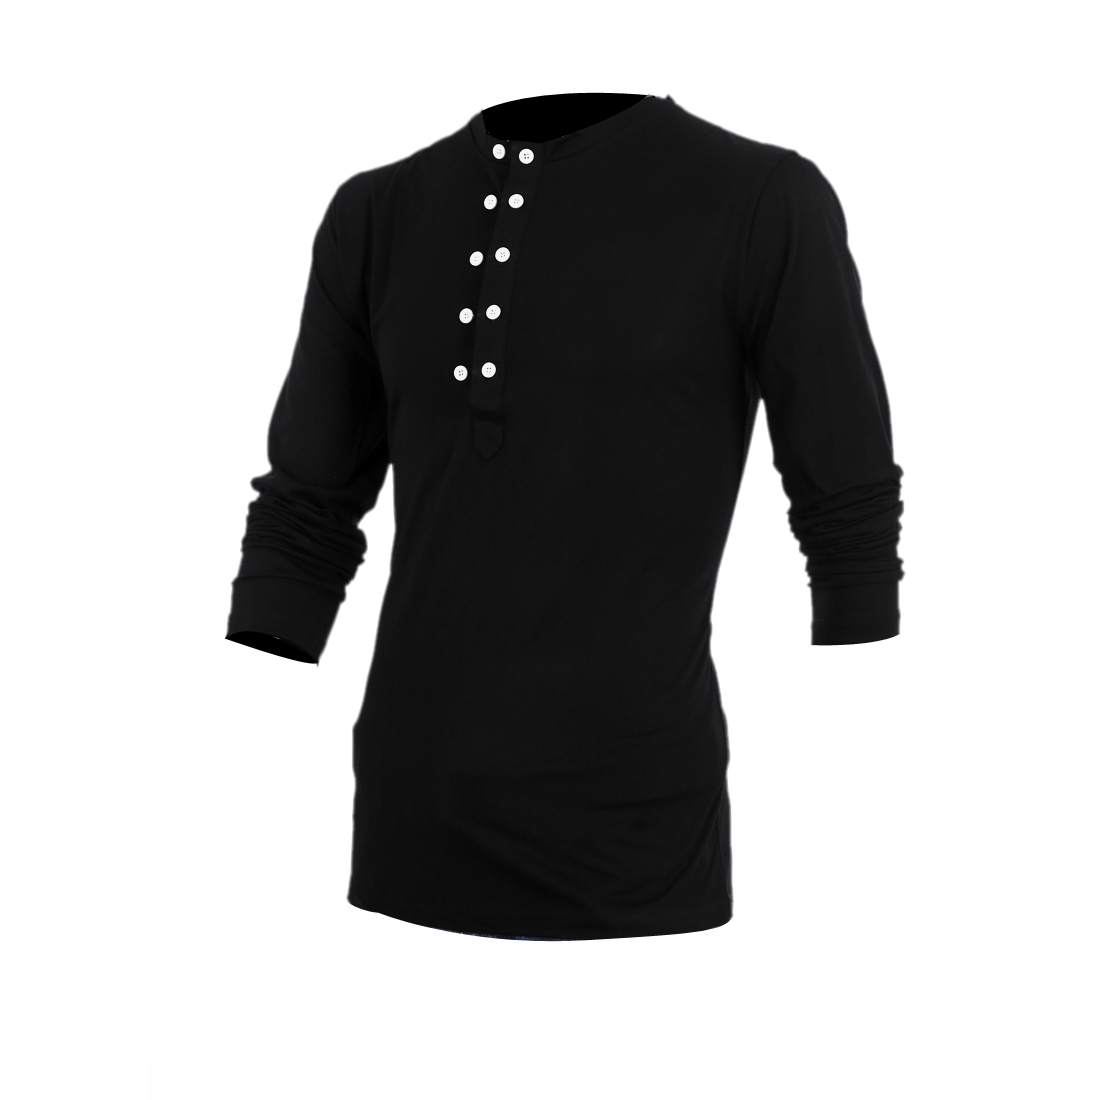 Man Newly Round Neck Long Sleeve Solid Black Spring Top Shirt M